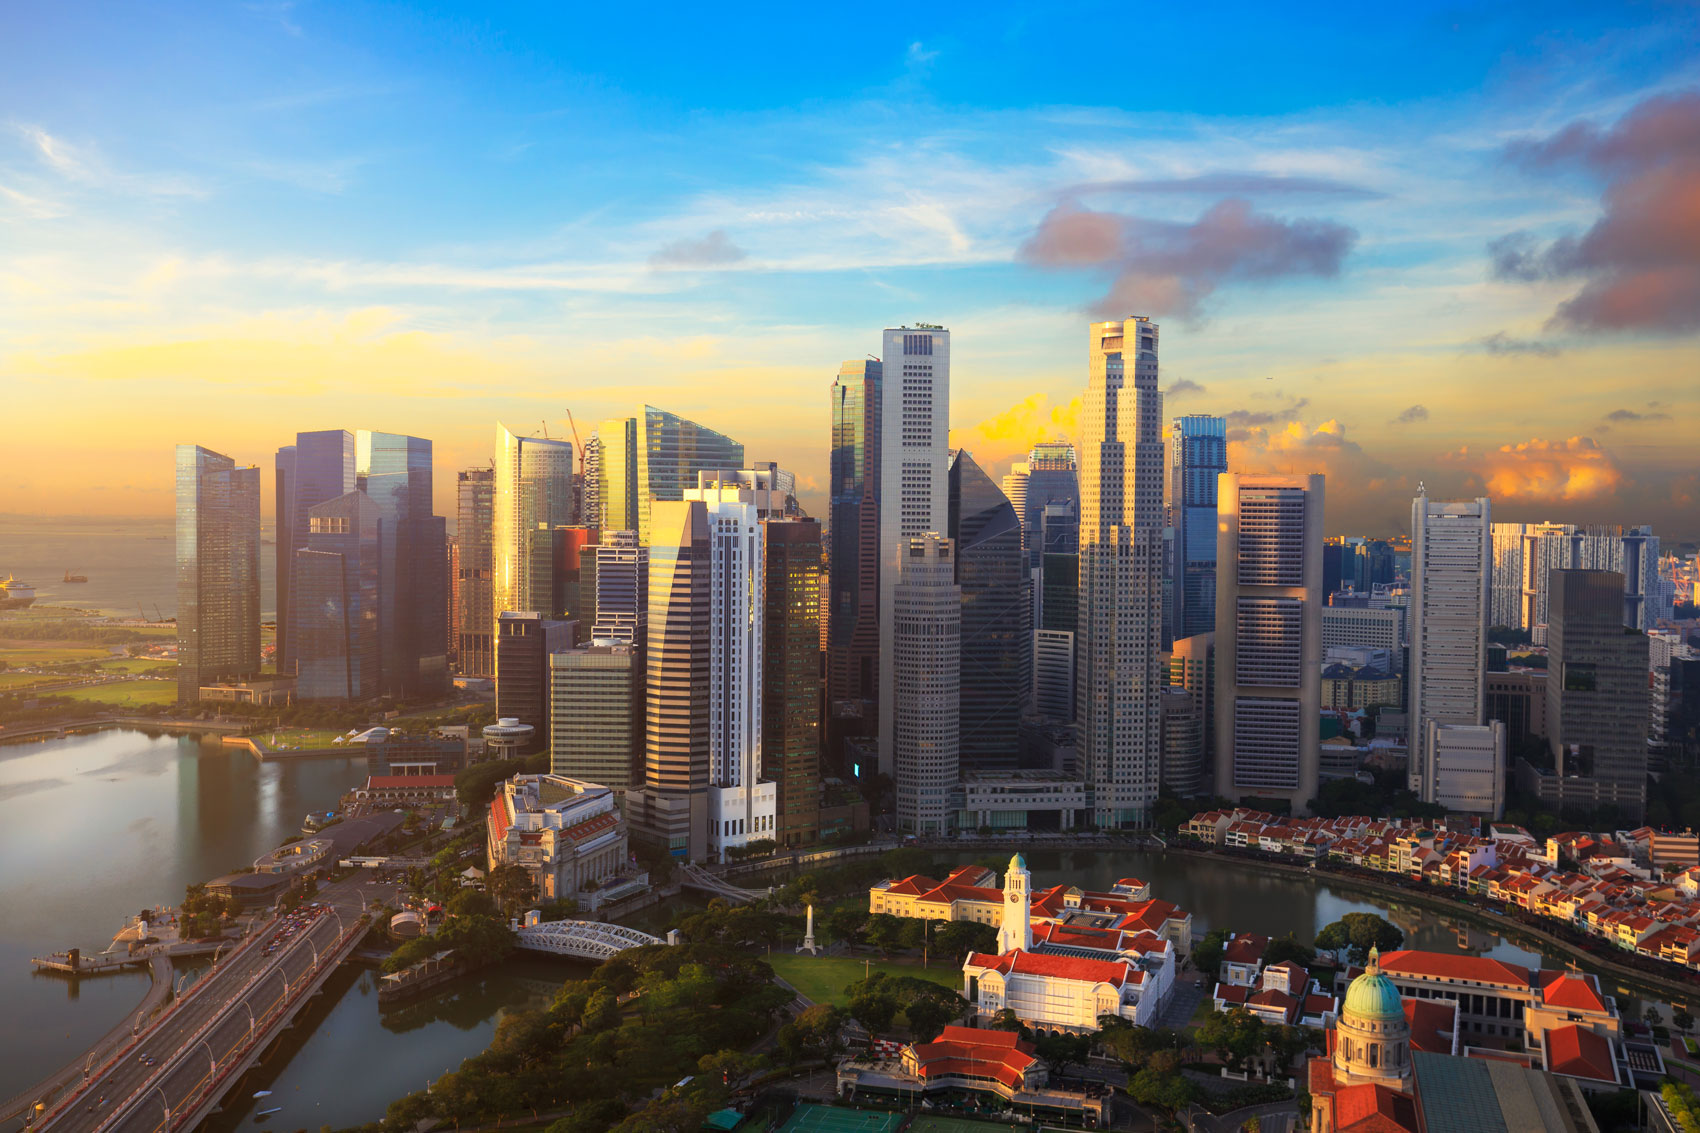 The beautiful cityscape of Singapore basked in the afternoon sun.